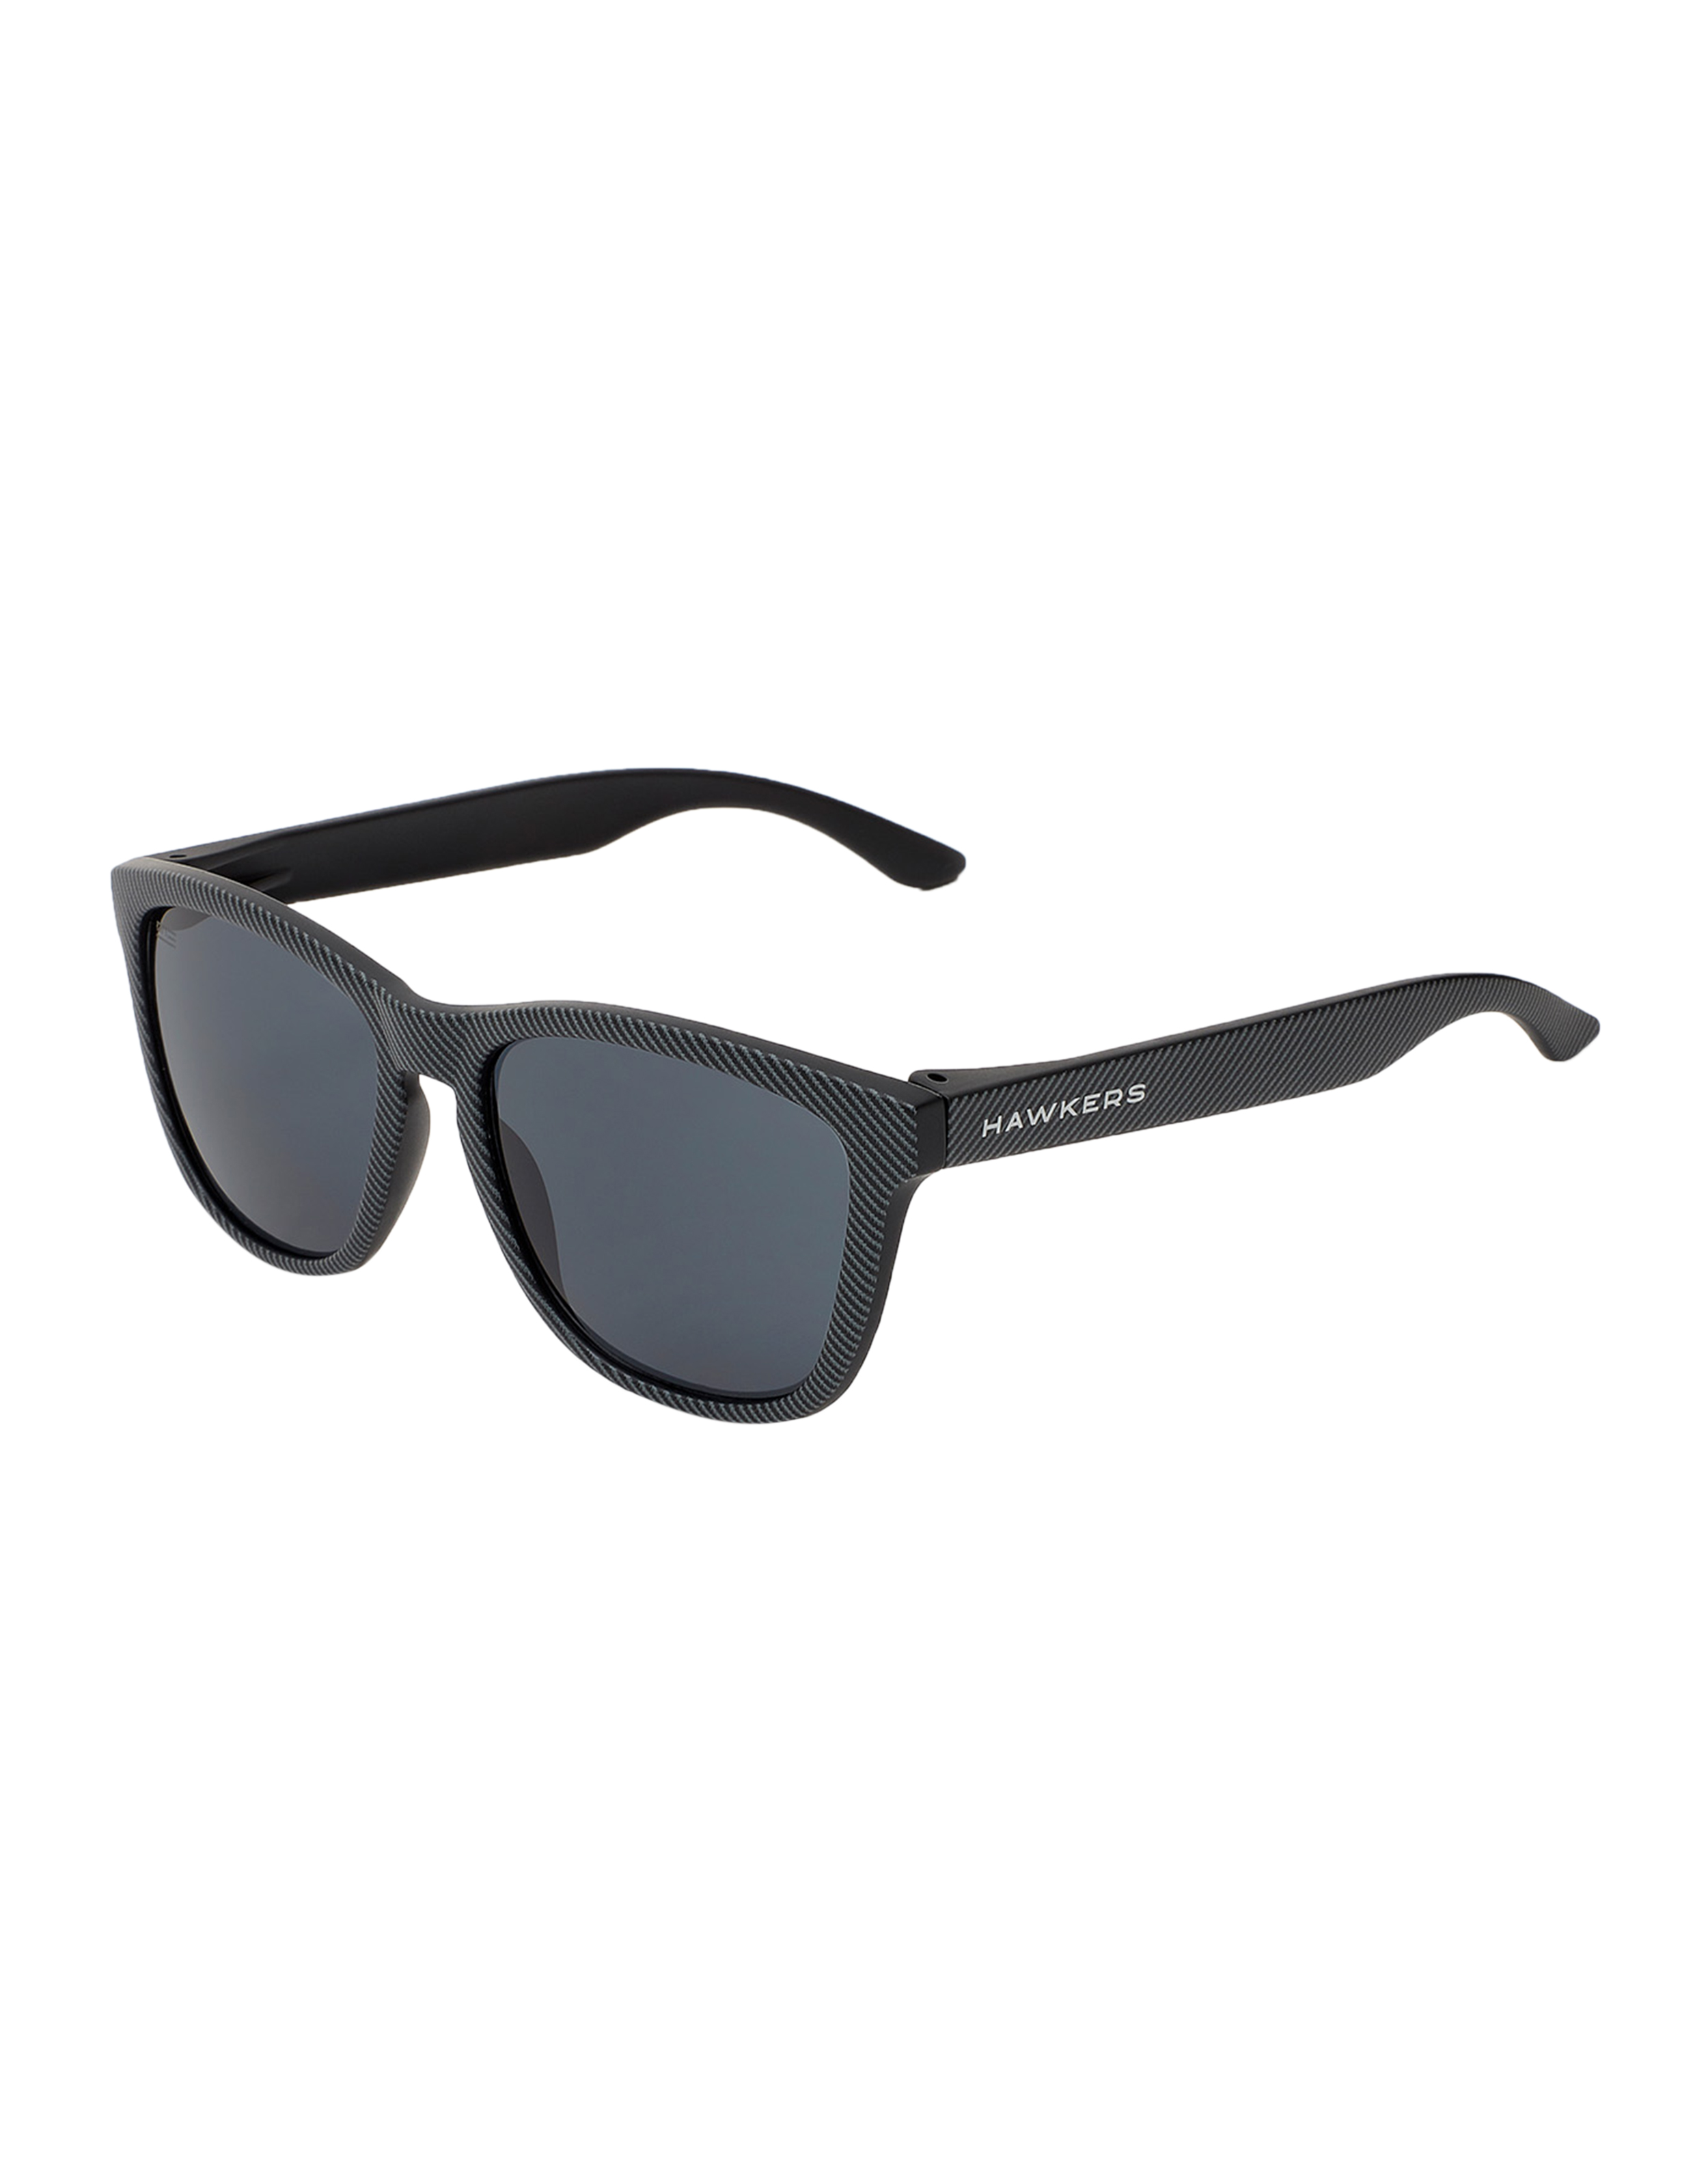 amp;bear Lunettes One De Hawkers Dark Soleil Carbono Pull CorxBde